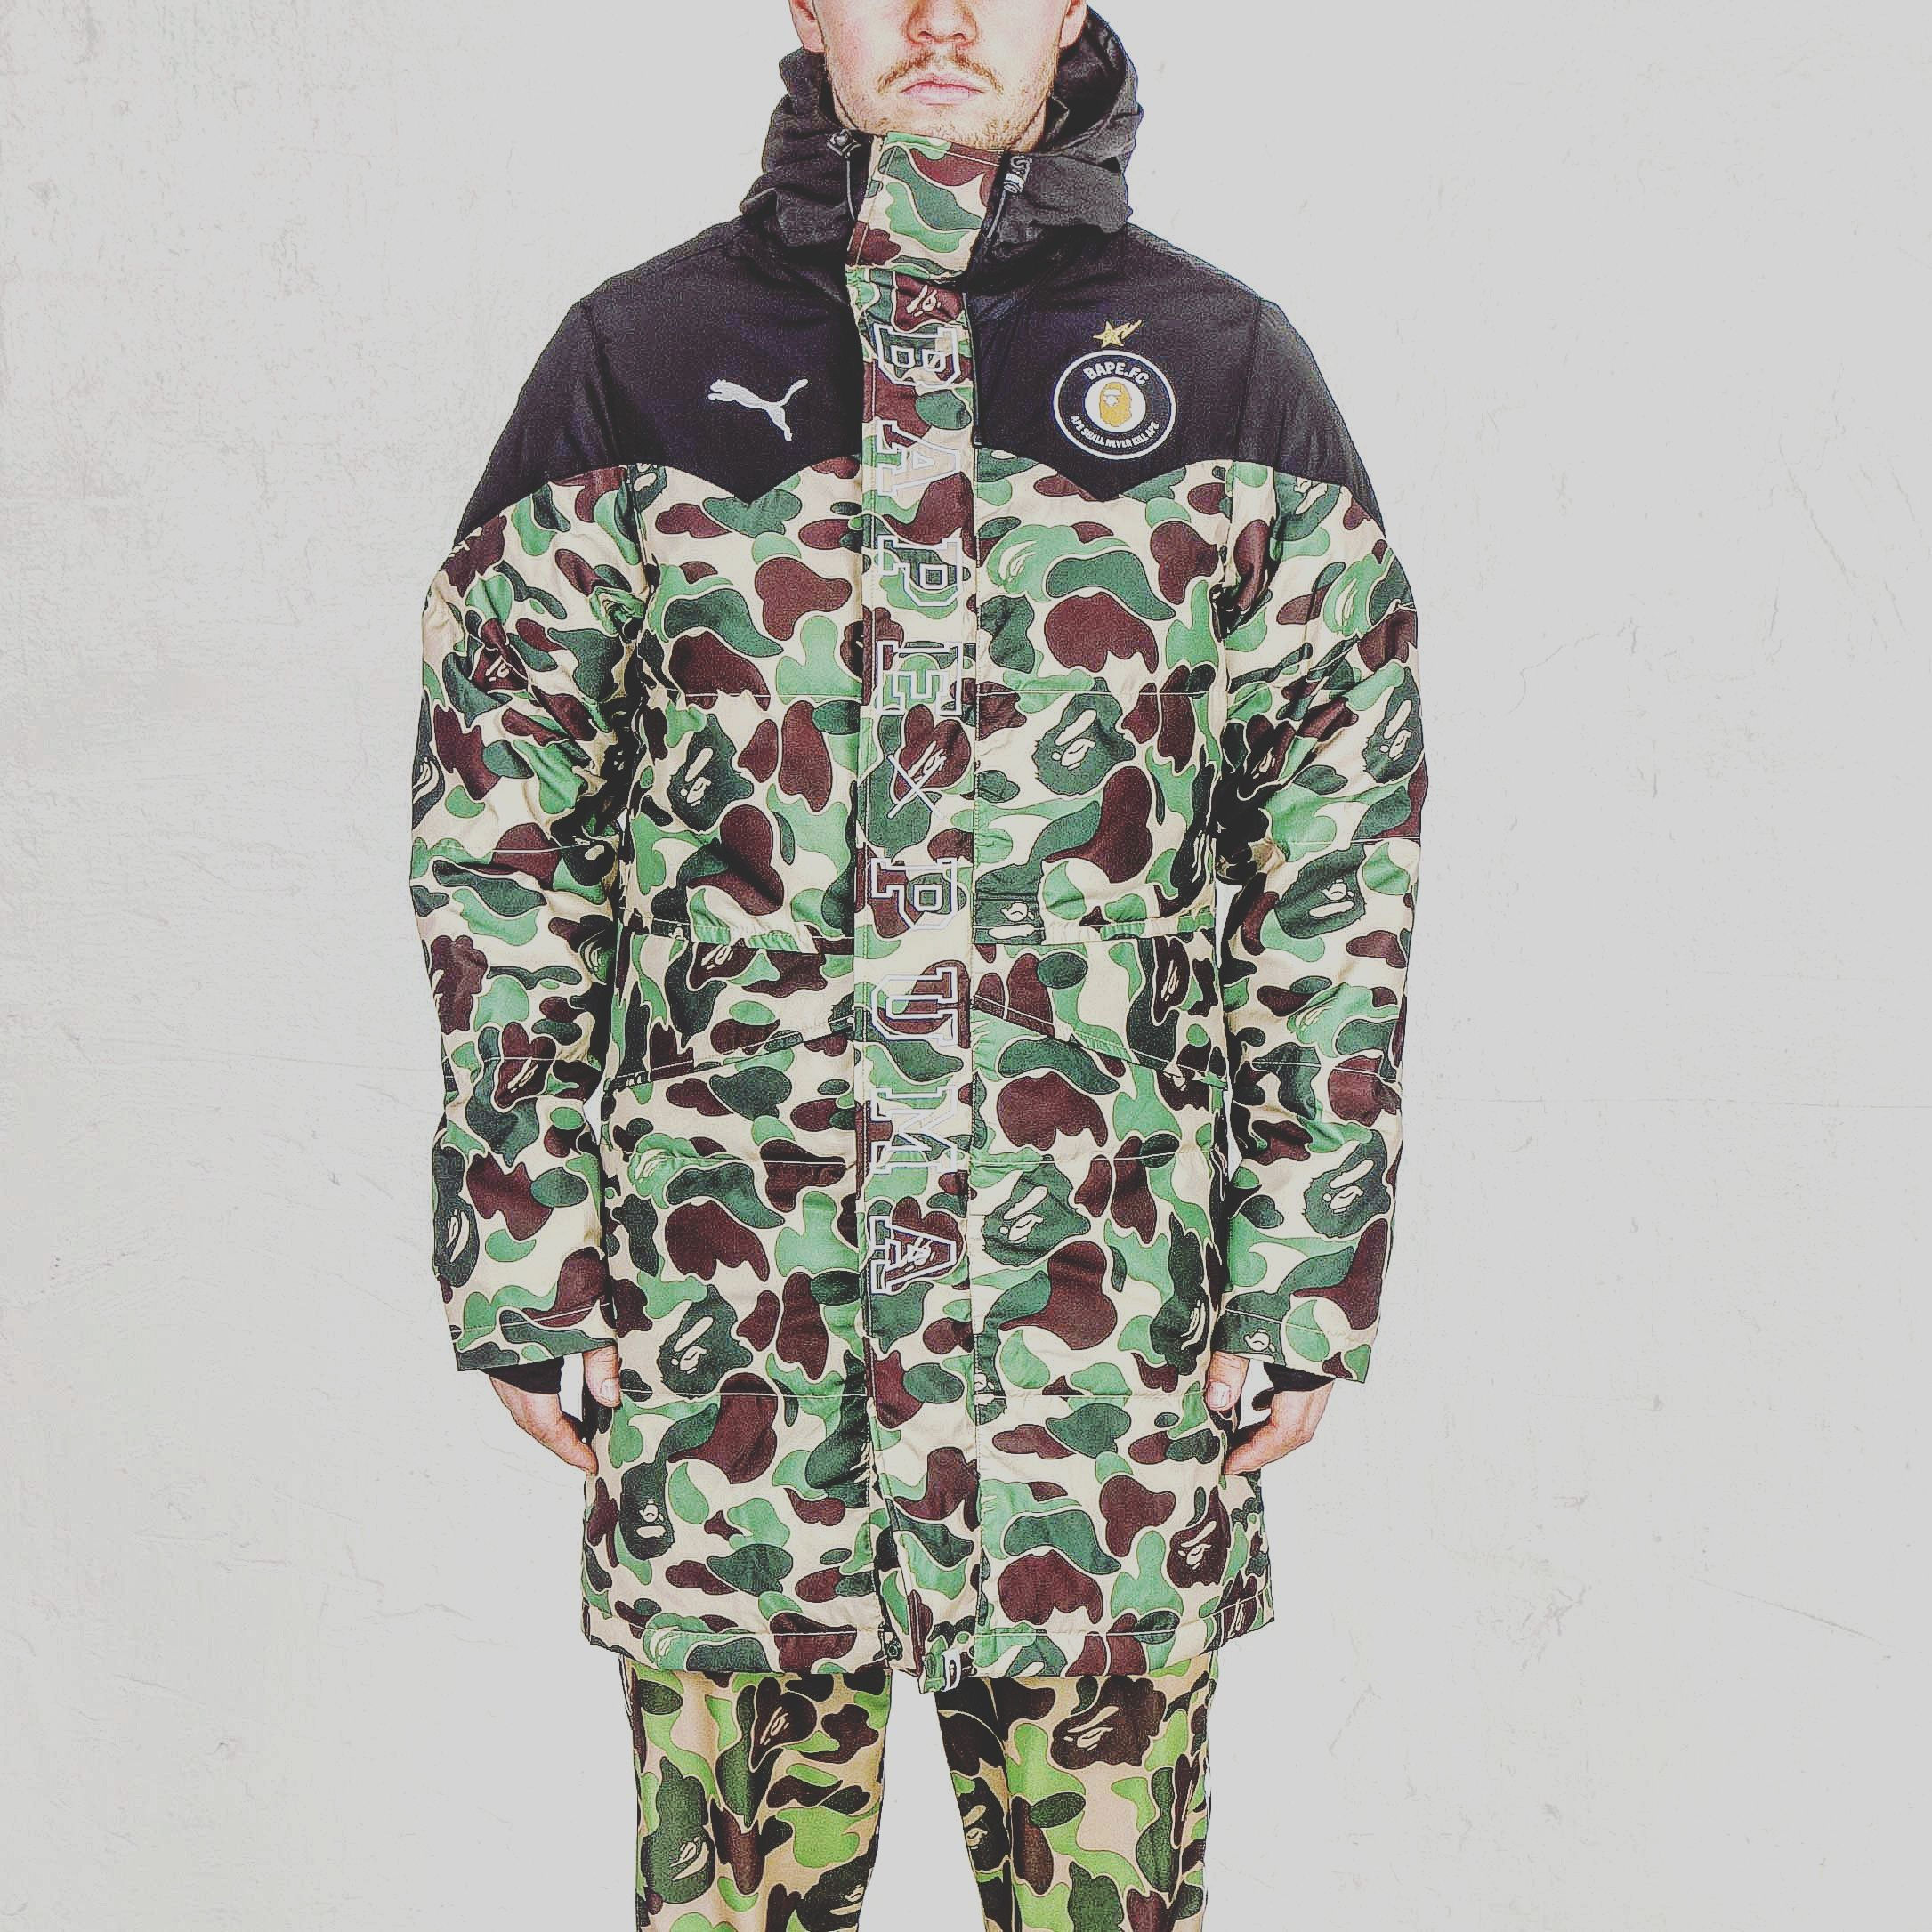 b1b80b3aa609c Bape x Puma camo coat | fashion in 2019 | Camo fashion, Mens fashion ...